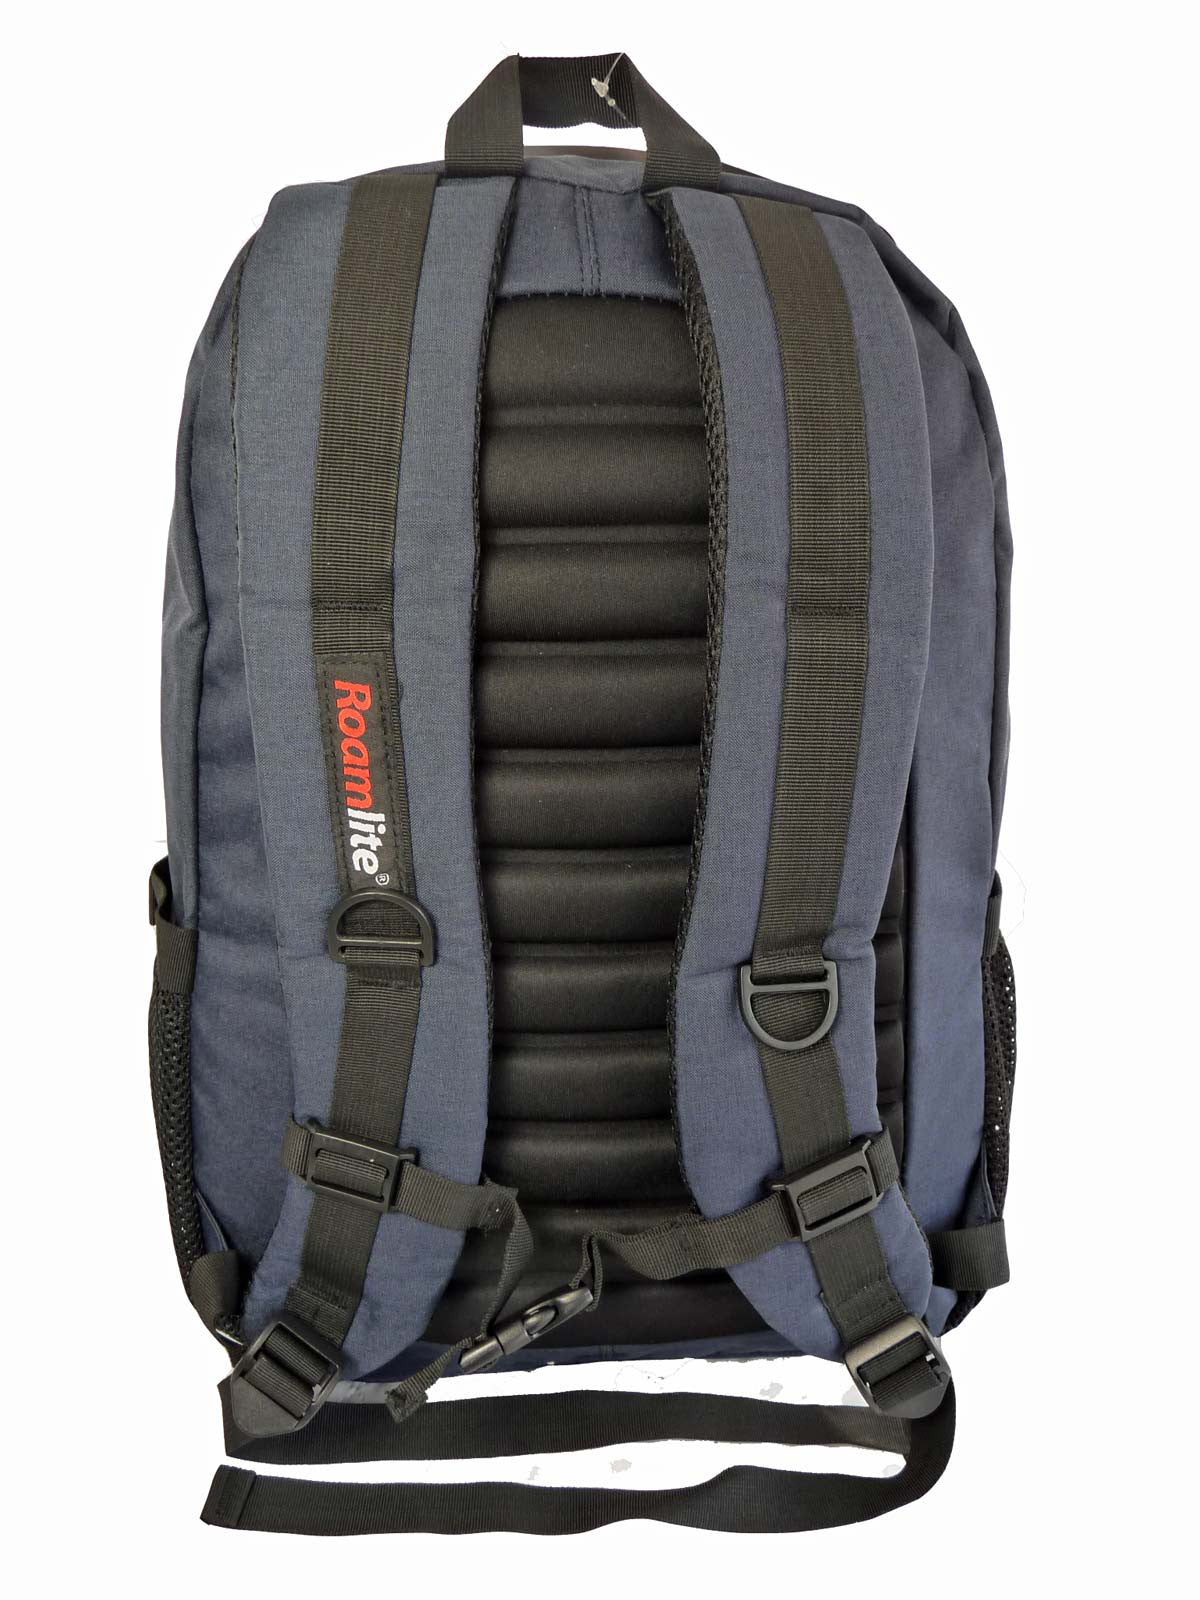 Laptop Macbook Backpack Rucksack Bag RL45N Rear View